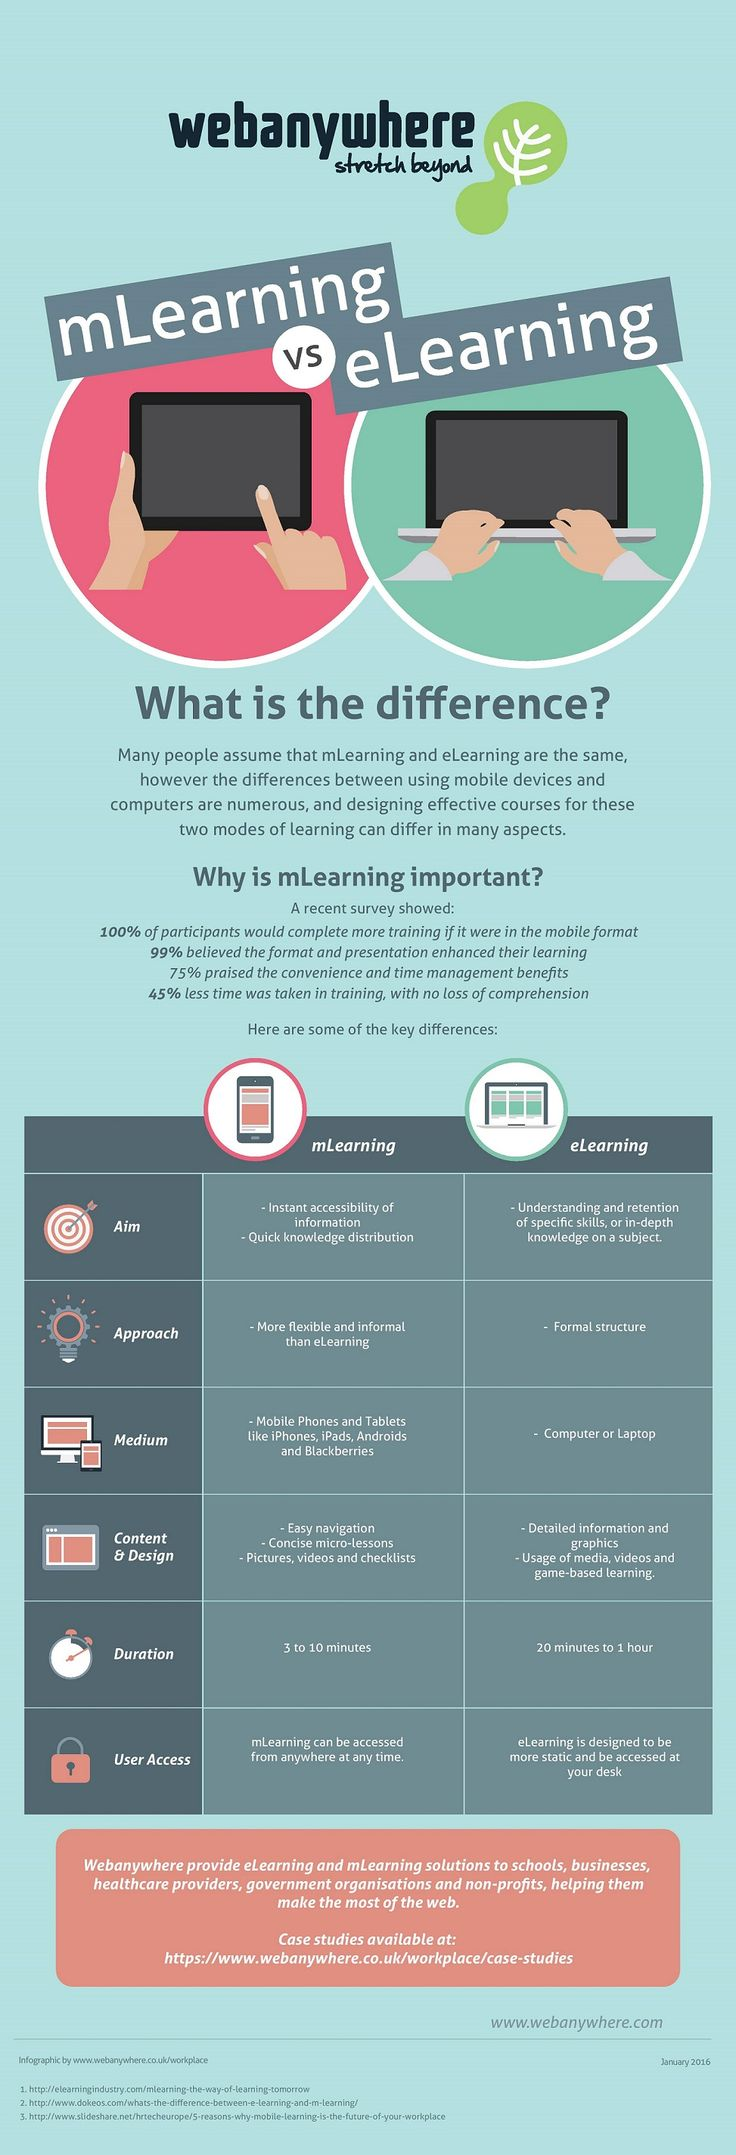 mLearning vs eLearning Infographic